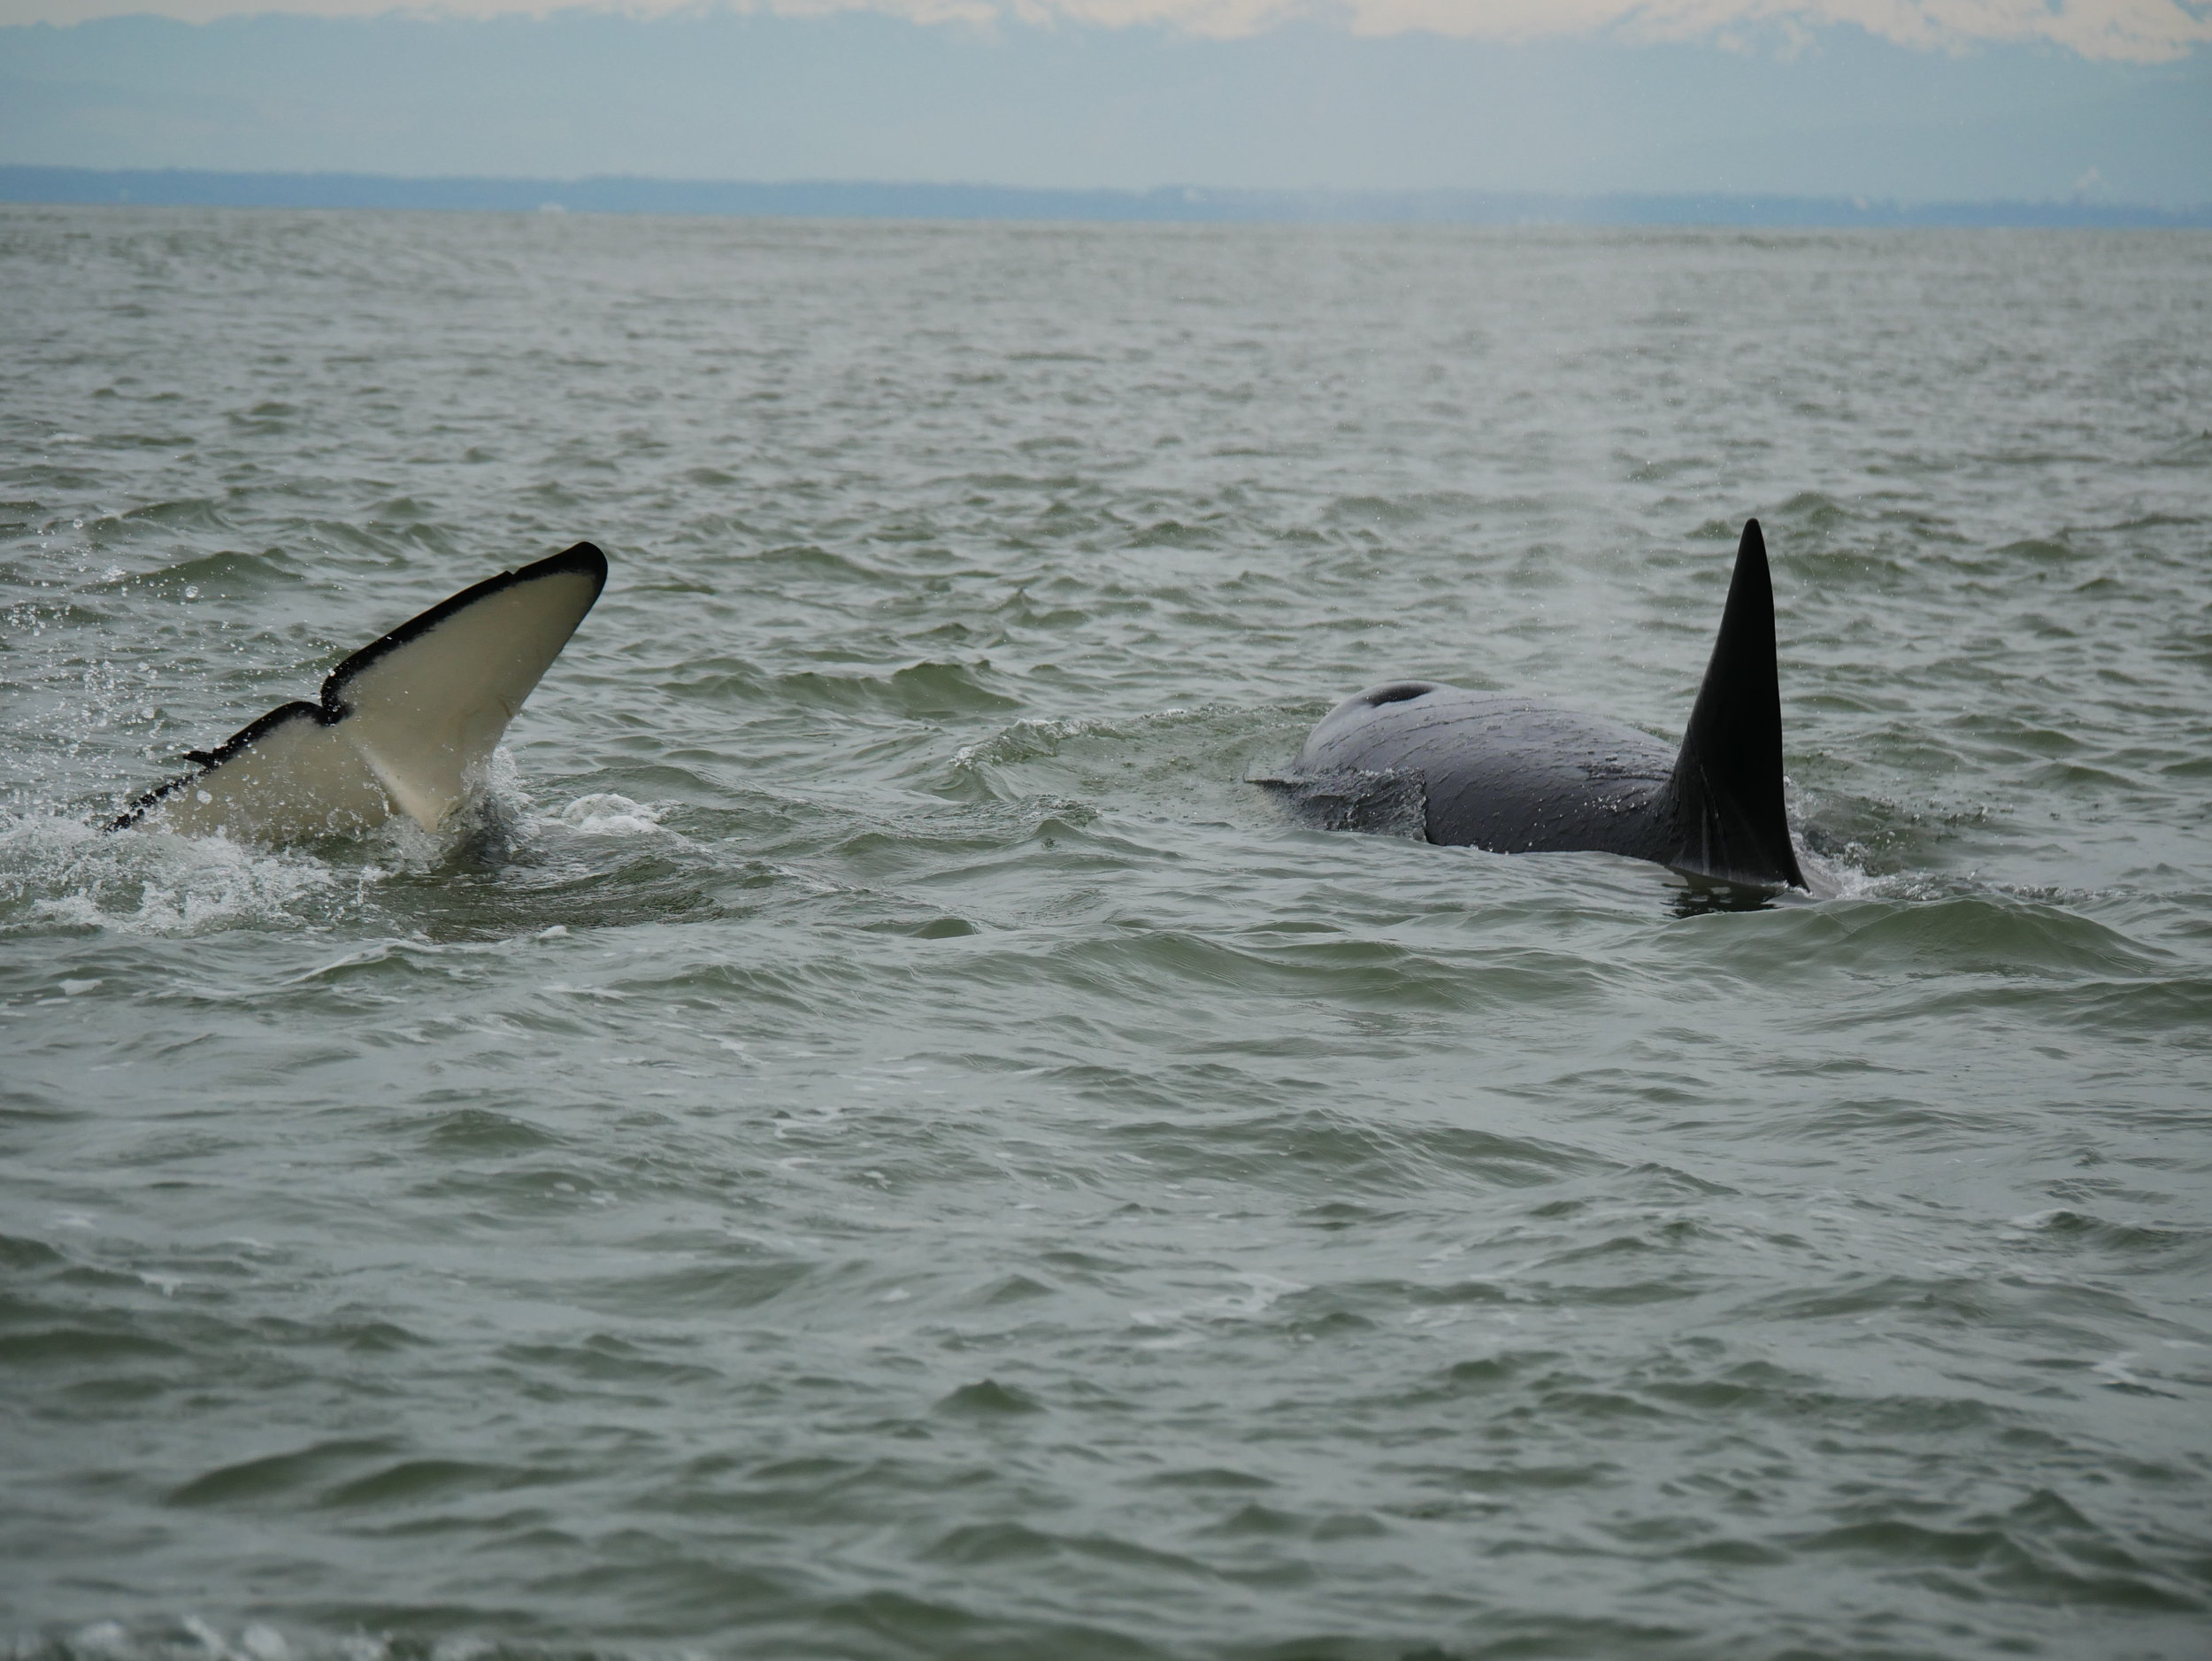 Celebratory tail slaps as the whales leave the boat behind. Photo by Alannah Vivani.